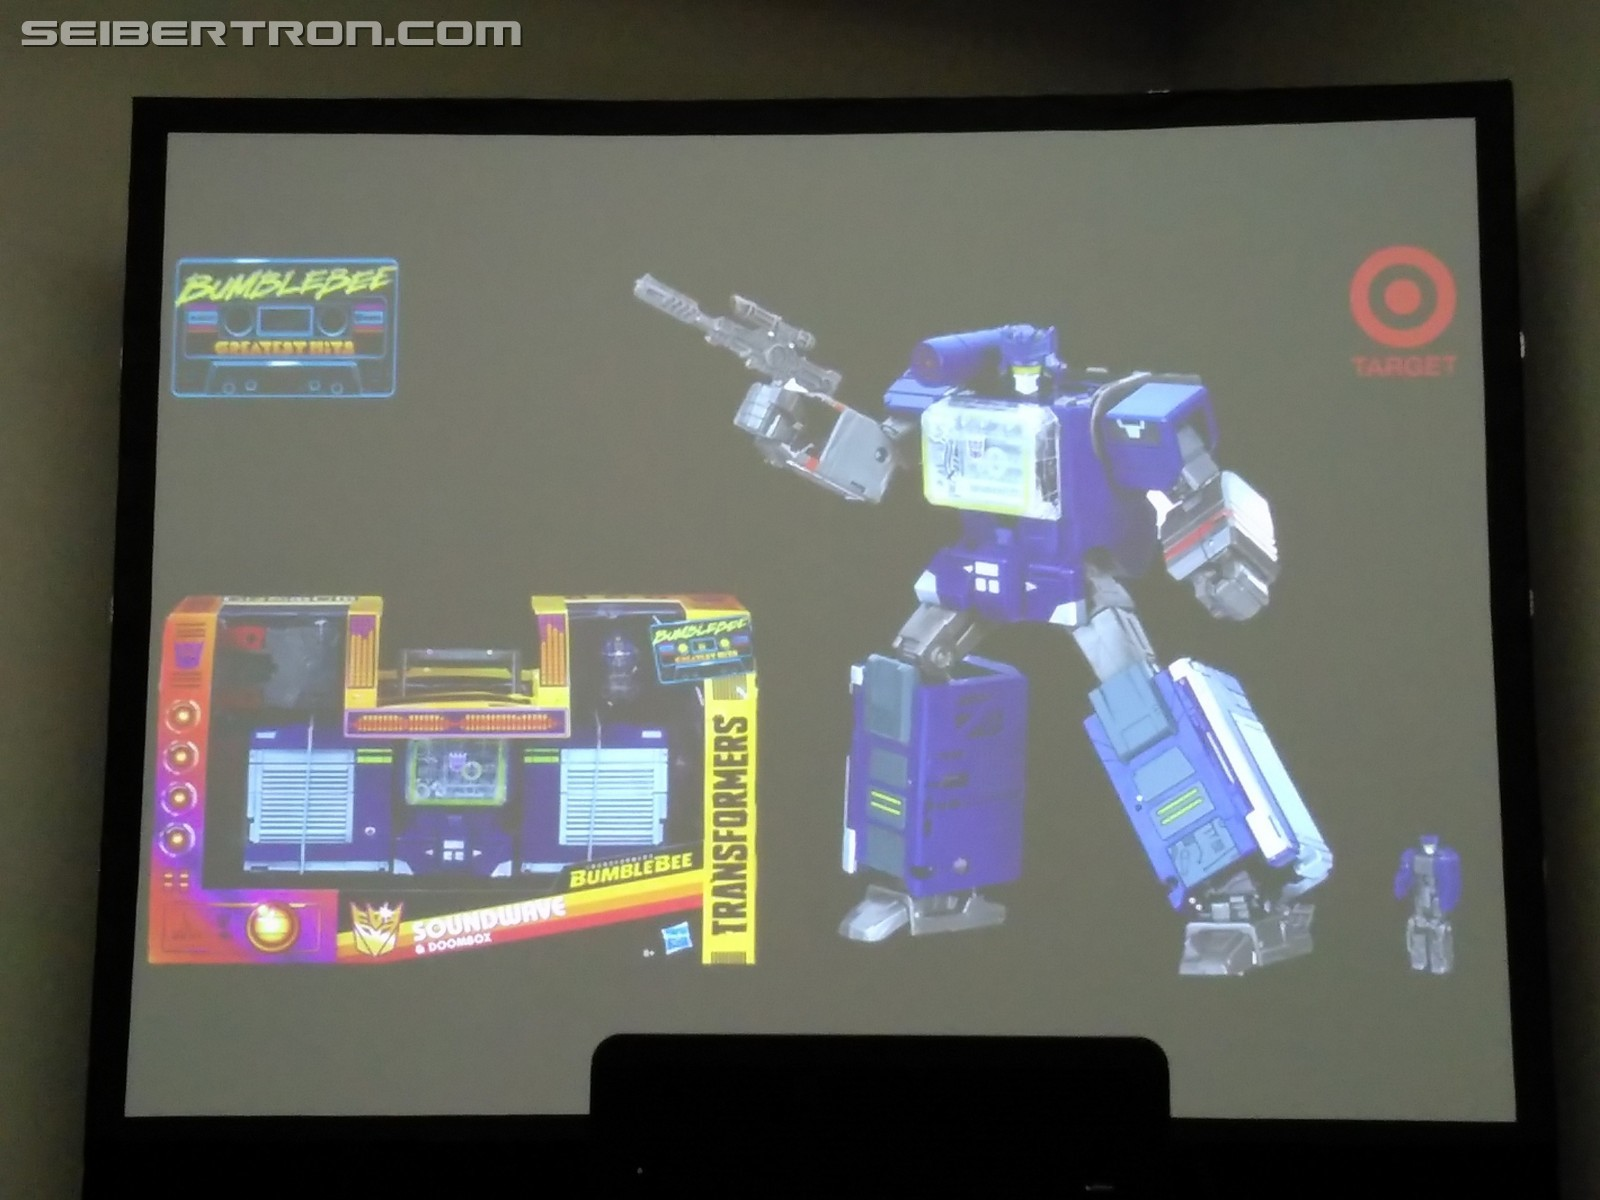 Transformers News: Hasbro Transformers Panel: Siege, Bumblebee, Reissues, More #SDCC2018 #HasbroSDCC